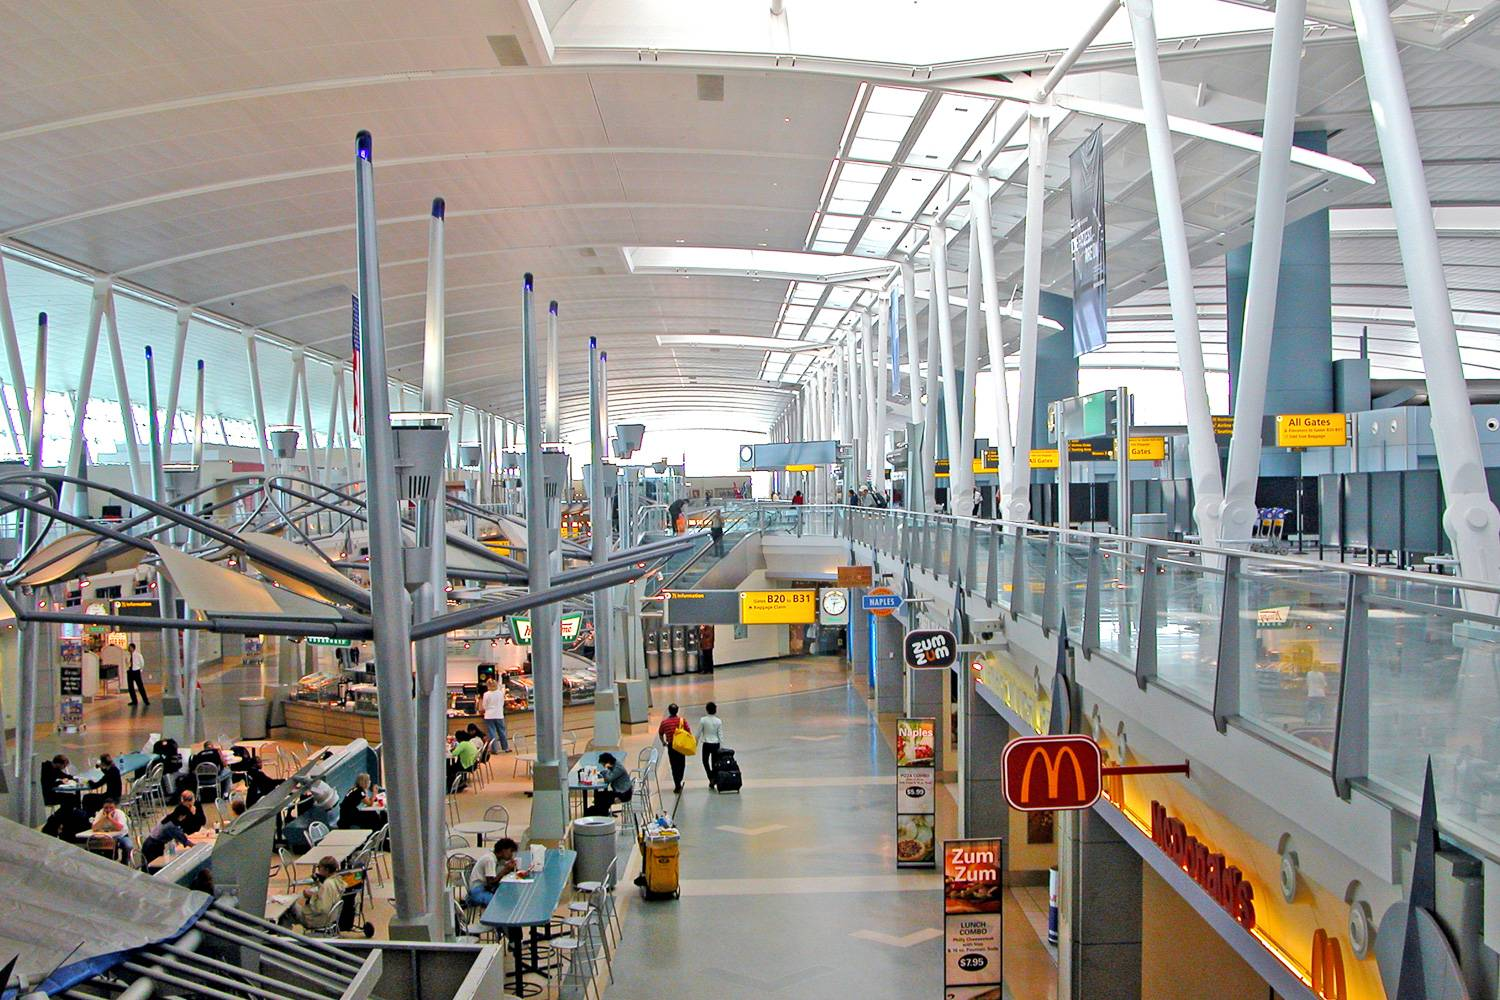 Image of interior of one of the terminals of JFK Airport with fast food restaurants.